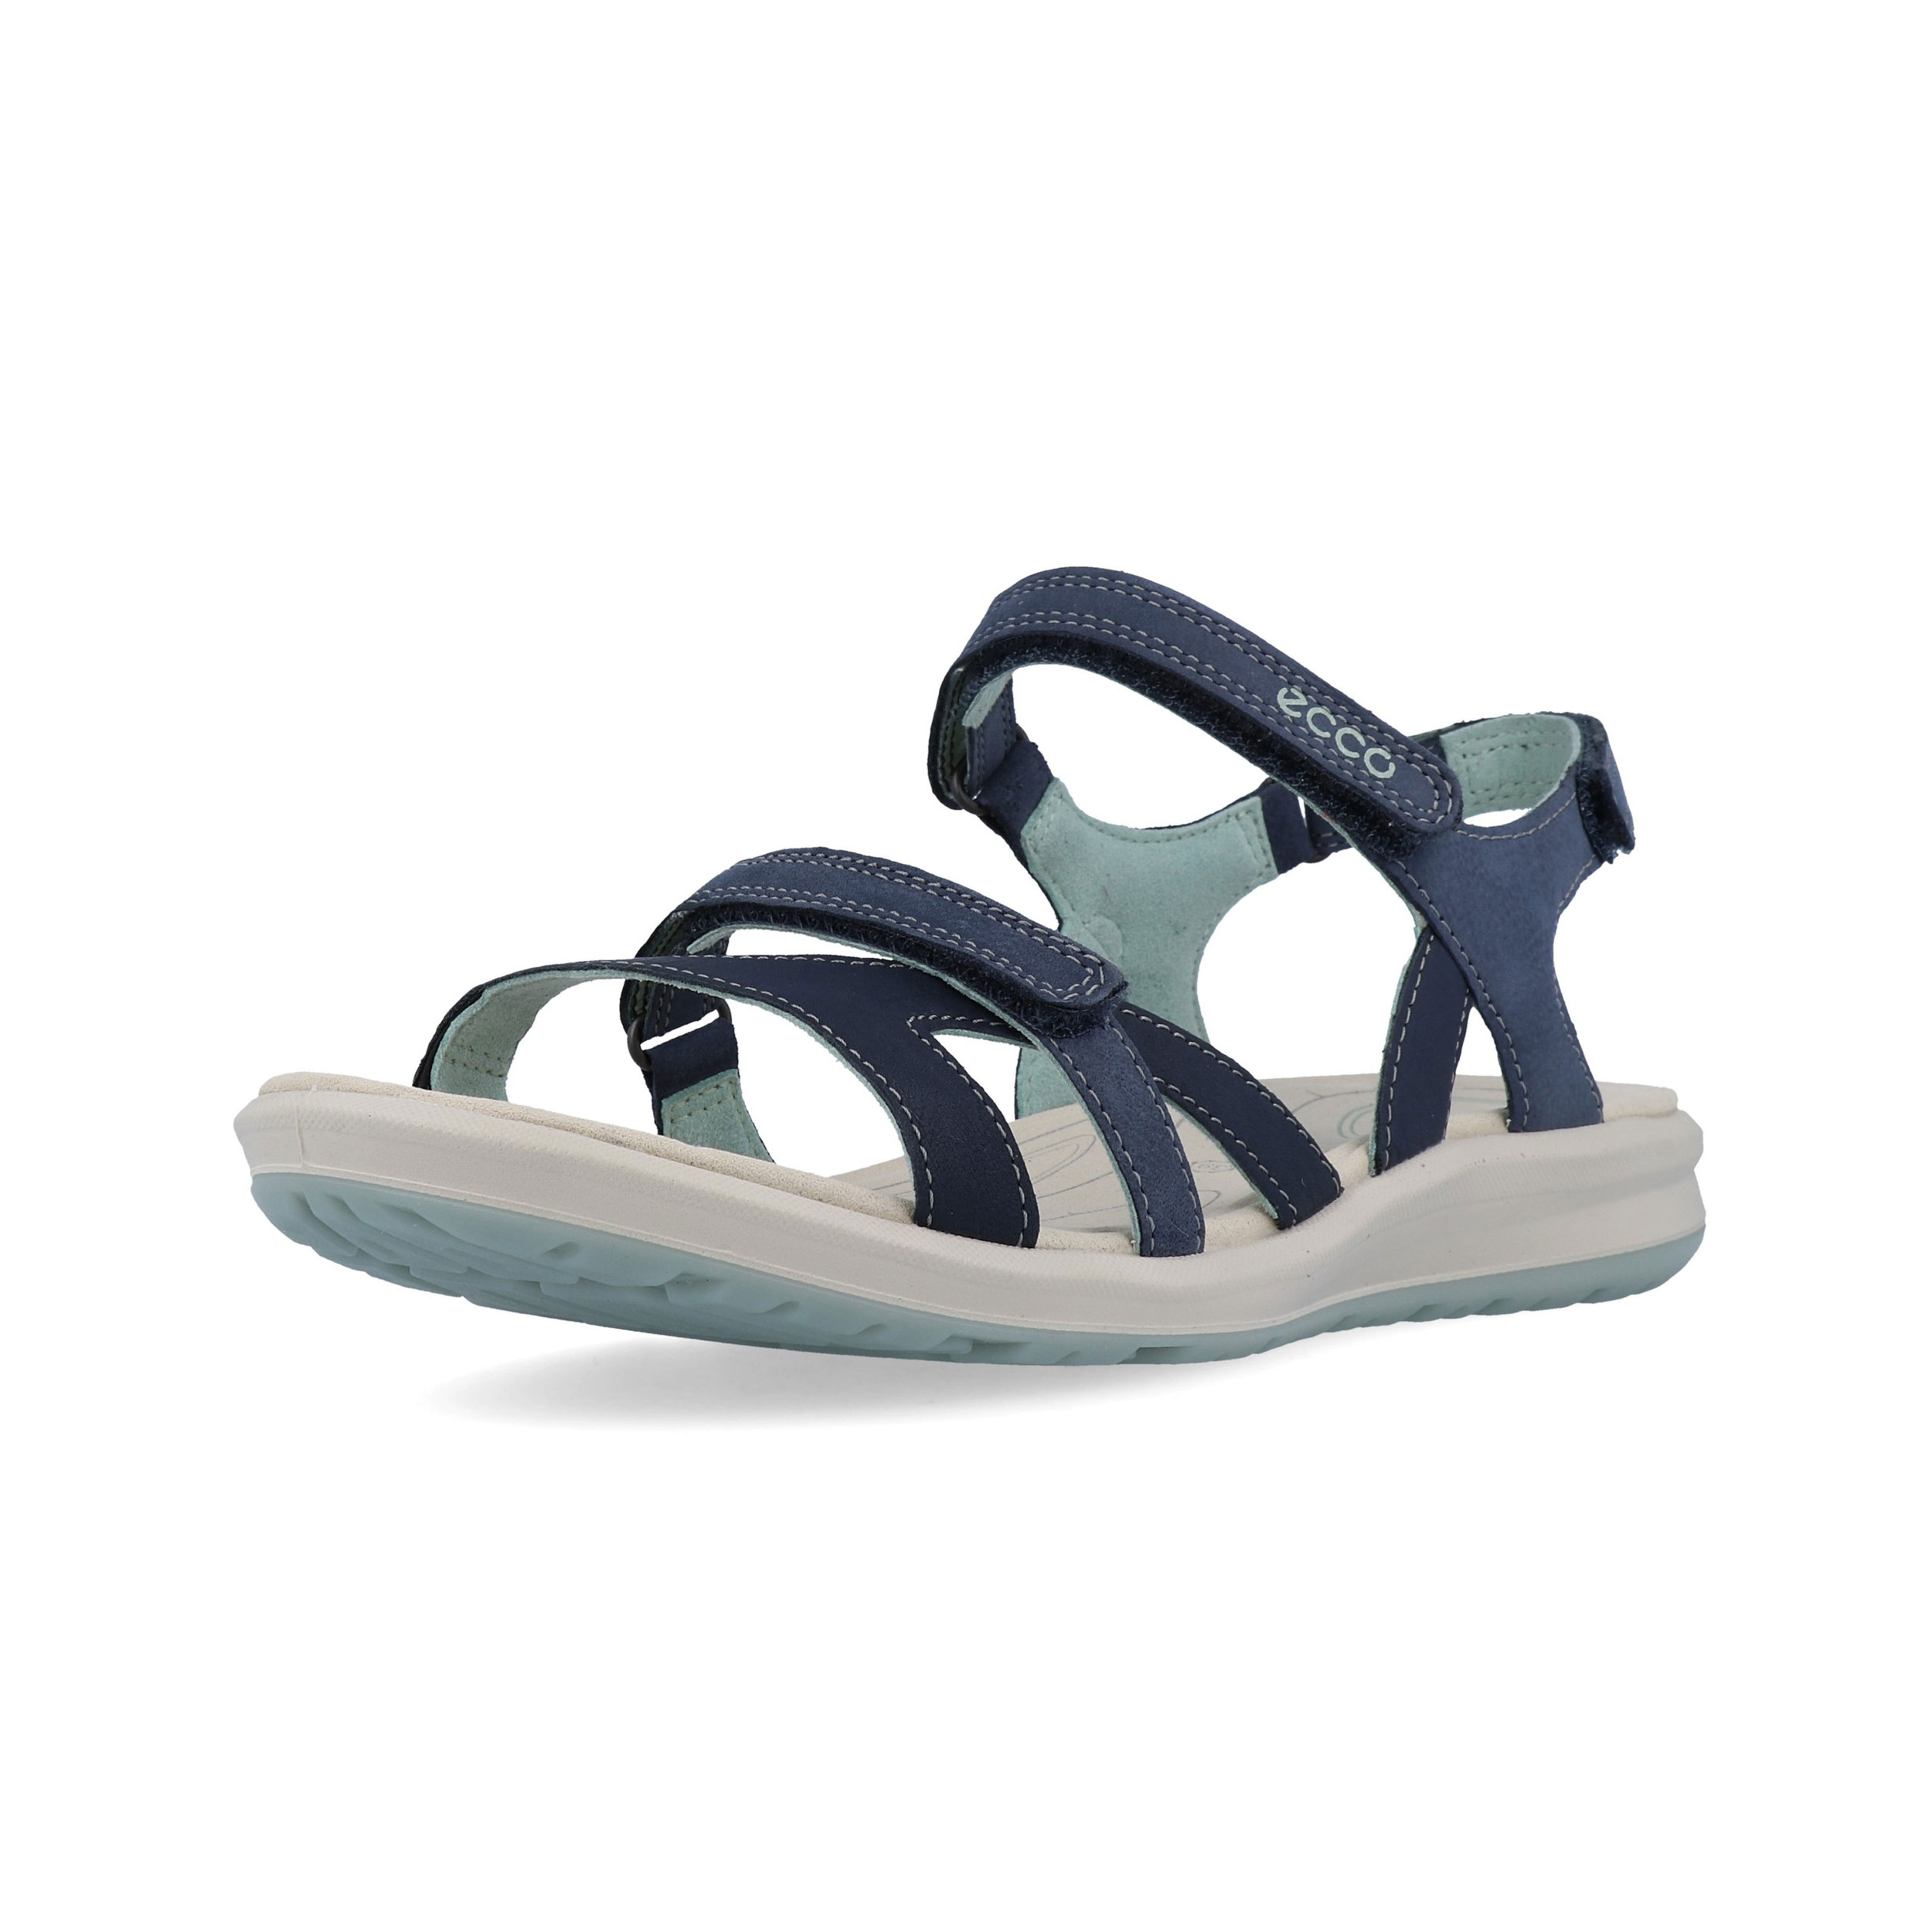 26032e9c3a Details about Ecco Womens Cruise II Walking Shoes Sandals Navy Blue Sports  Outdoors Breathable